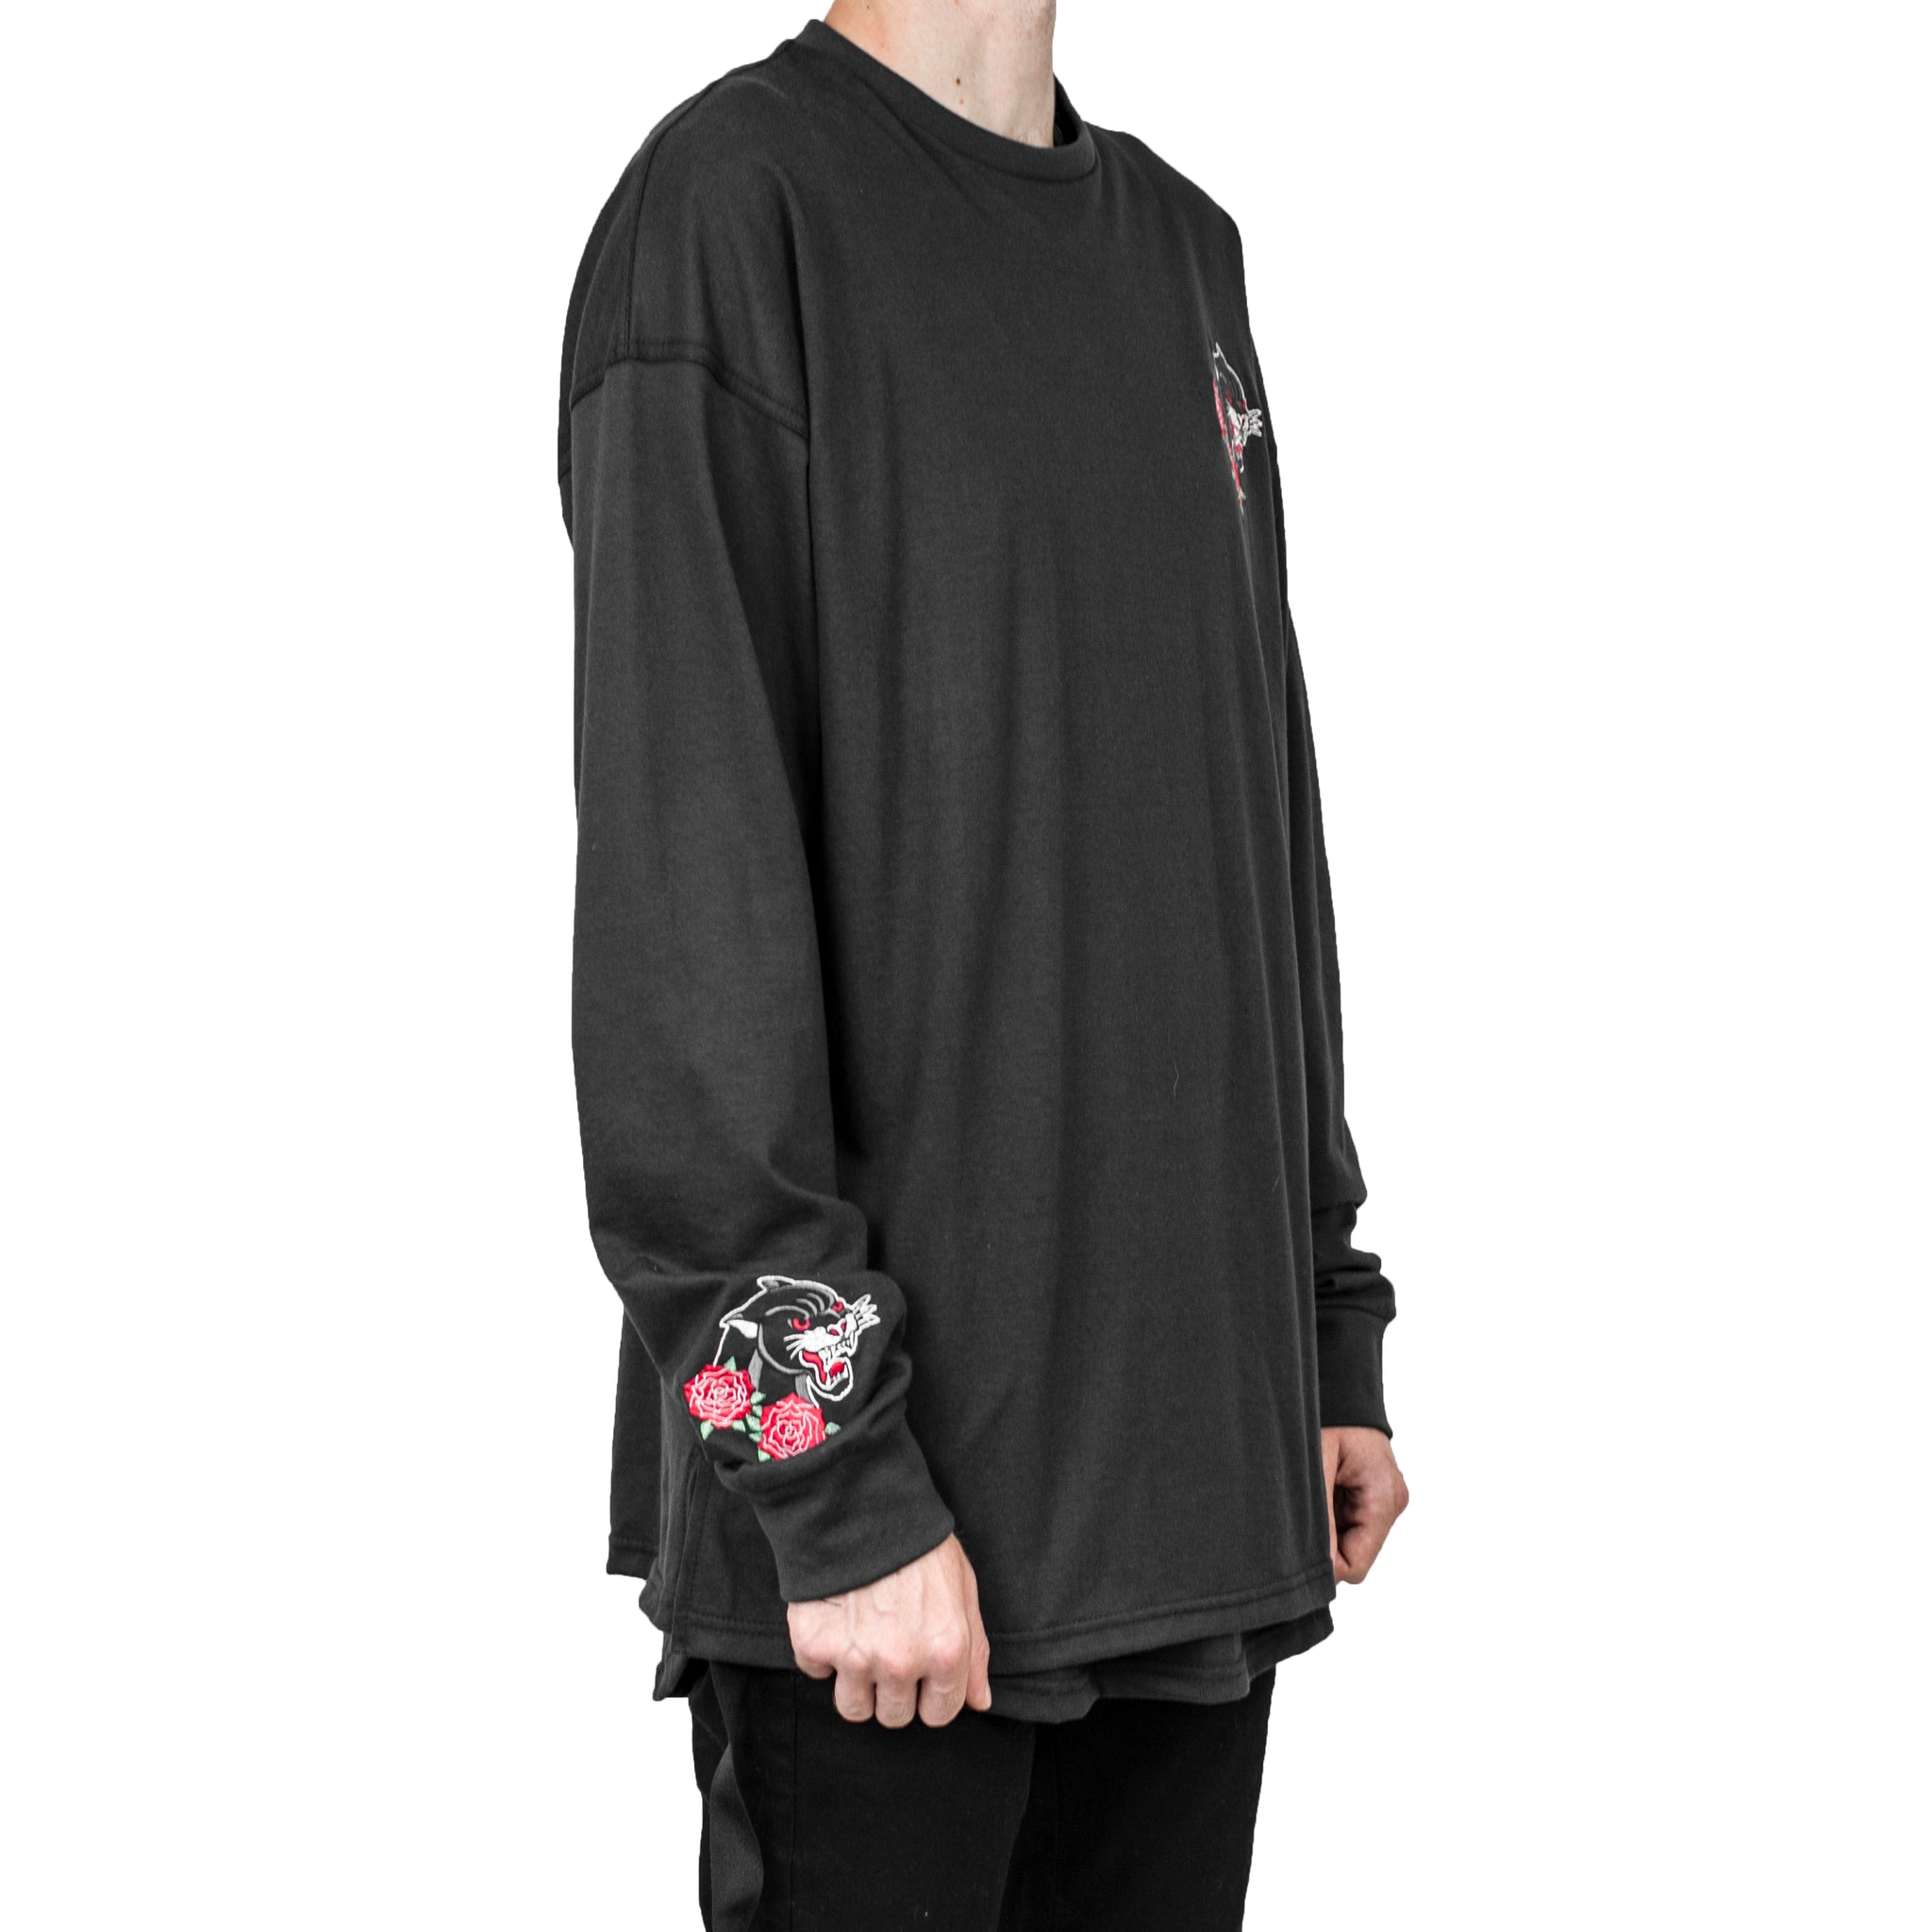 Panther Longsleeve : Black